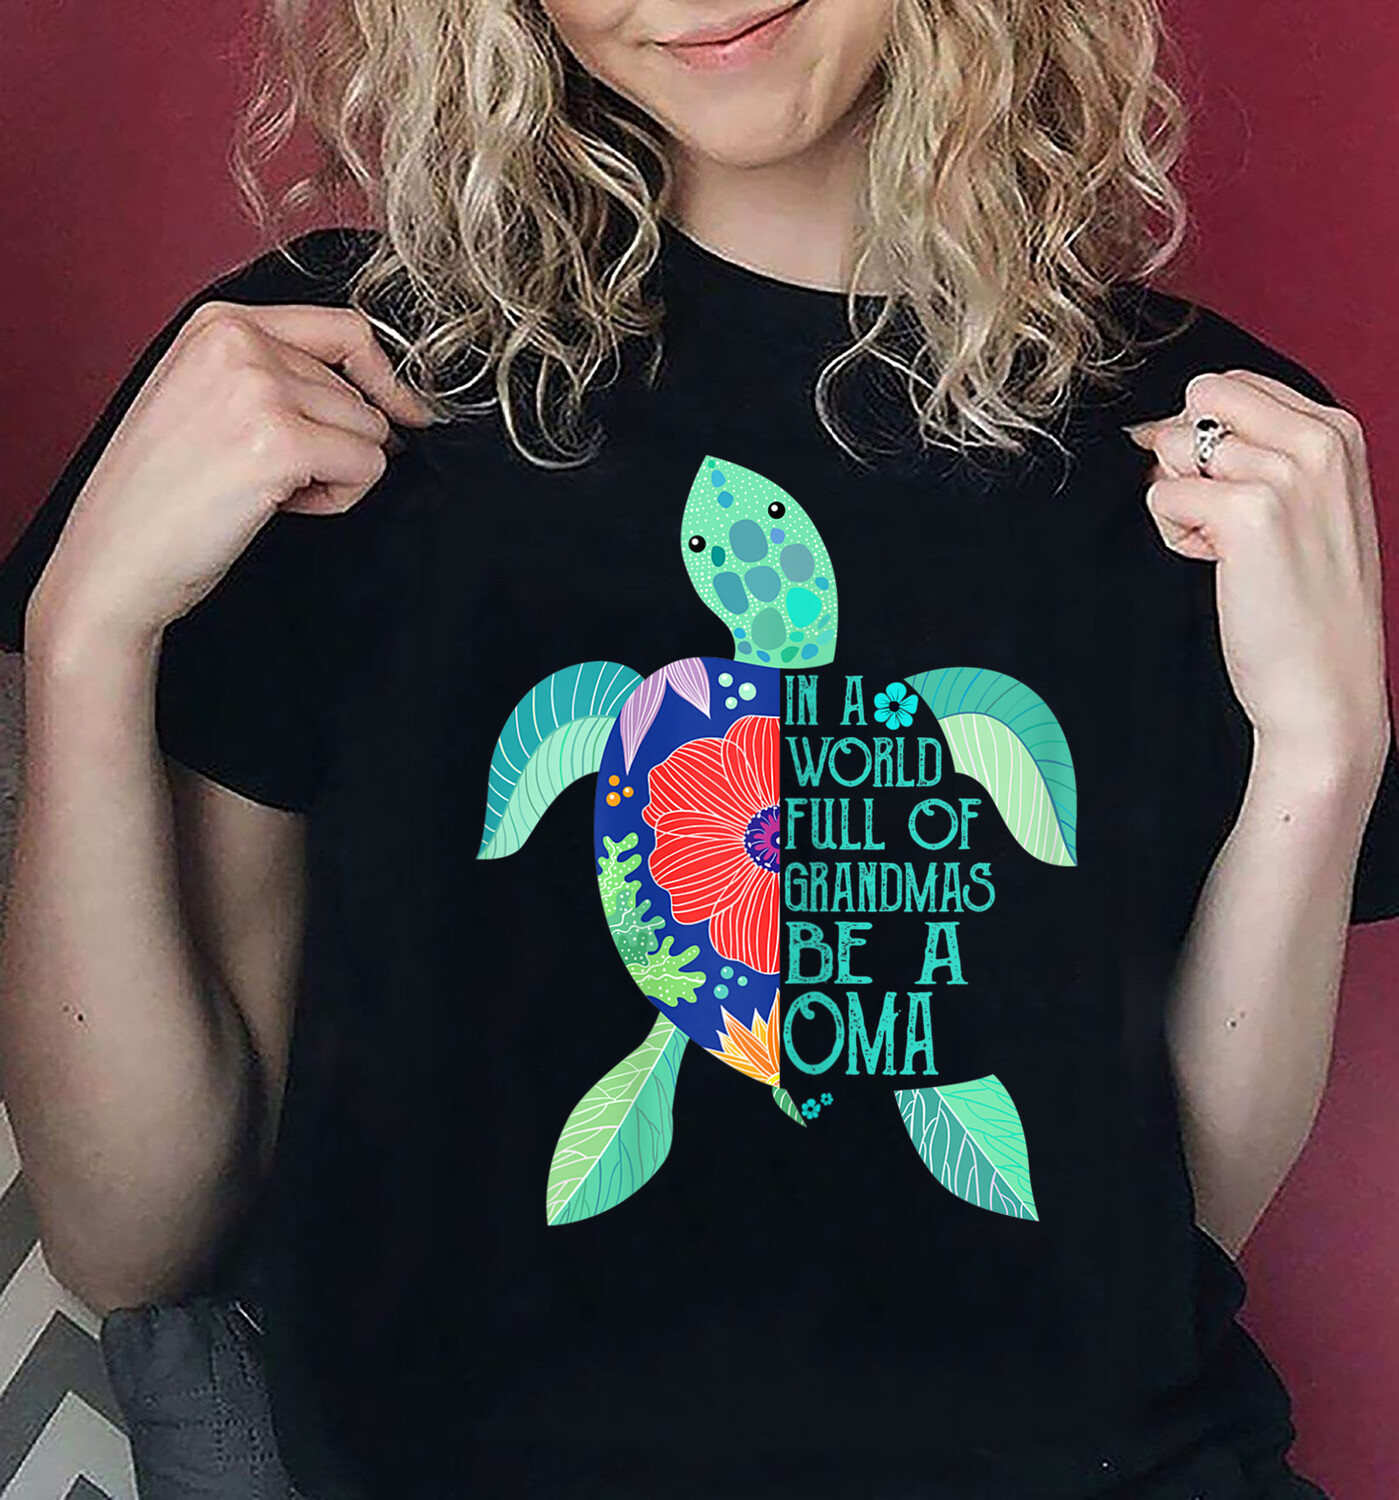 In A World Full Of Grandmas Be A oma Turtle Mother's day T-Shirt,Mimi Shirt, Nana shirt, OMA shirt, Grandma shirt, Mother's Day shirt, Sea Turtle Shirt, Love Turtle